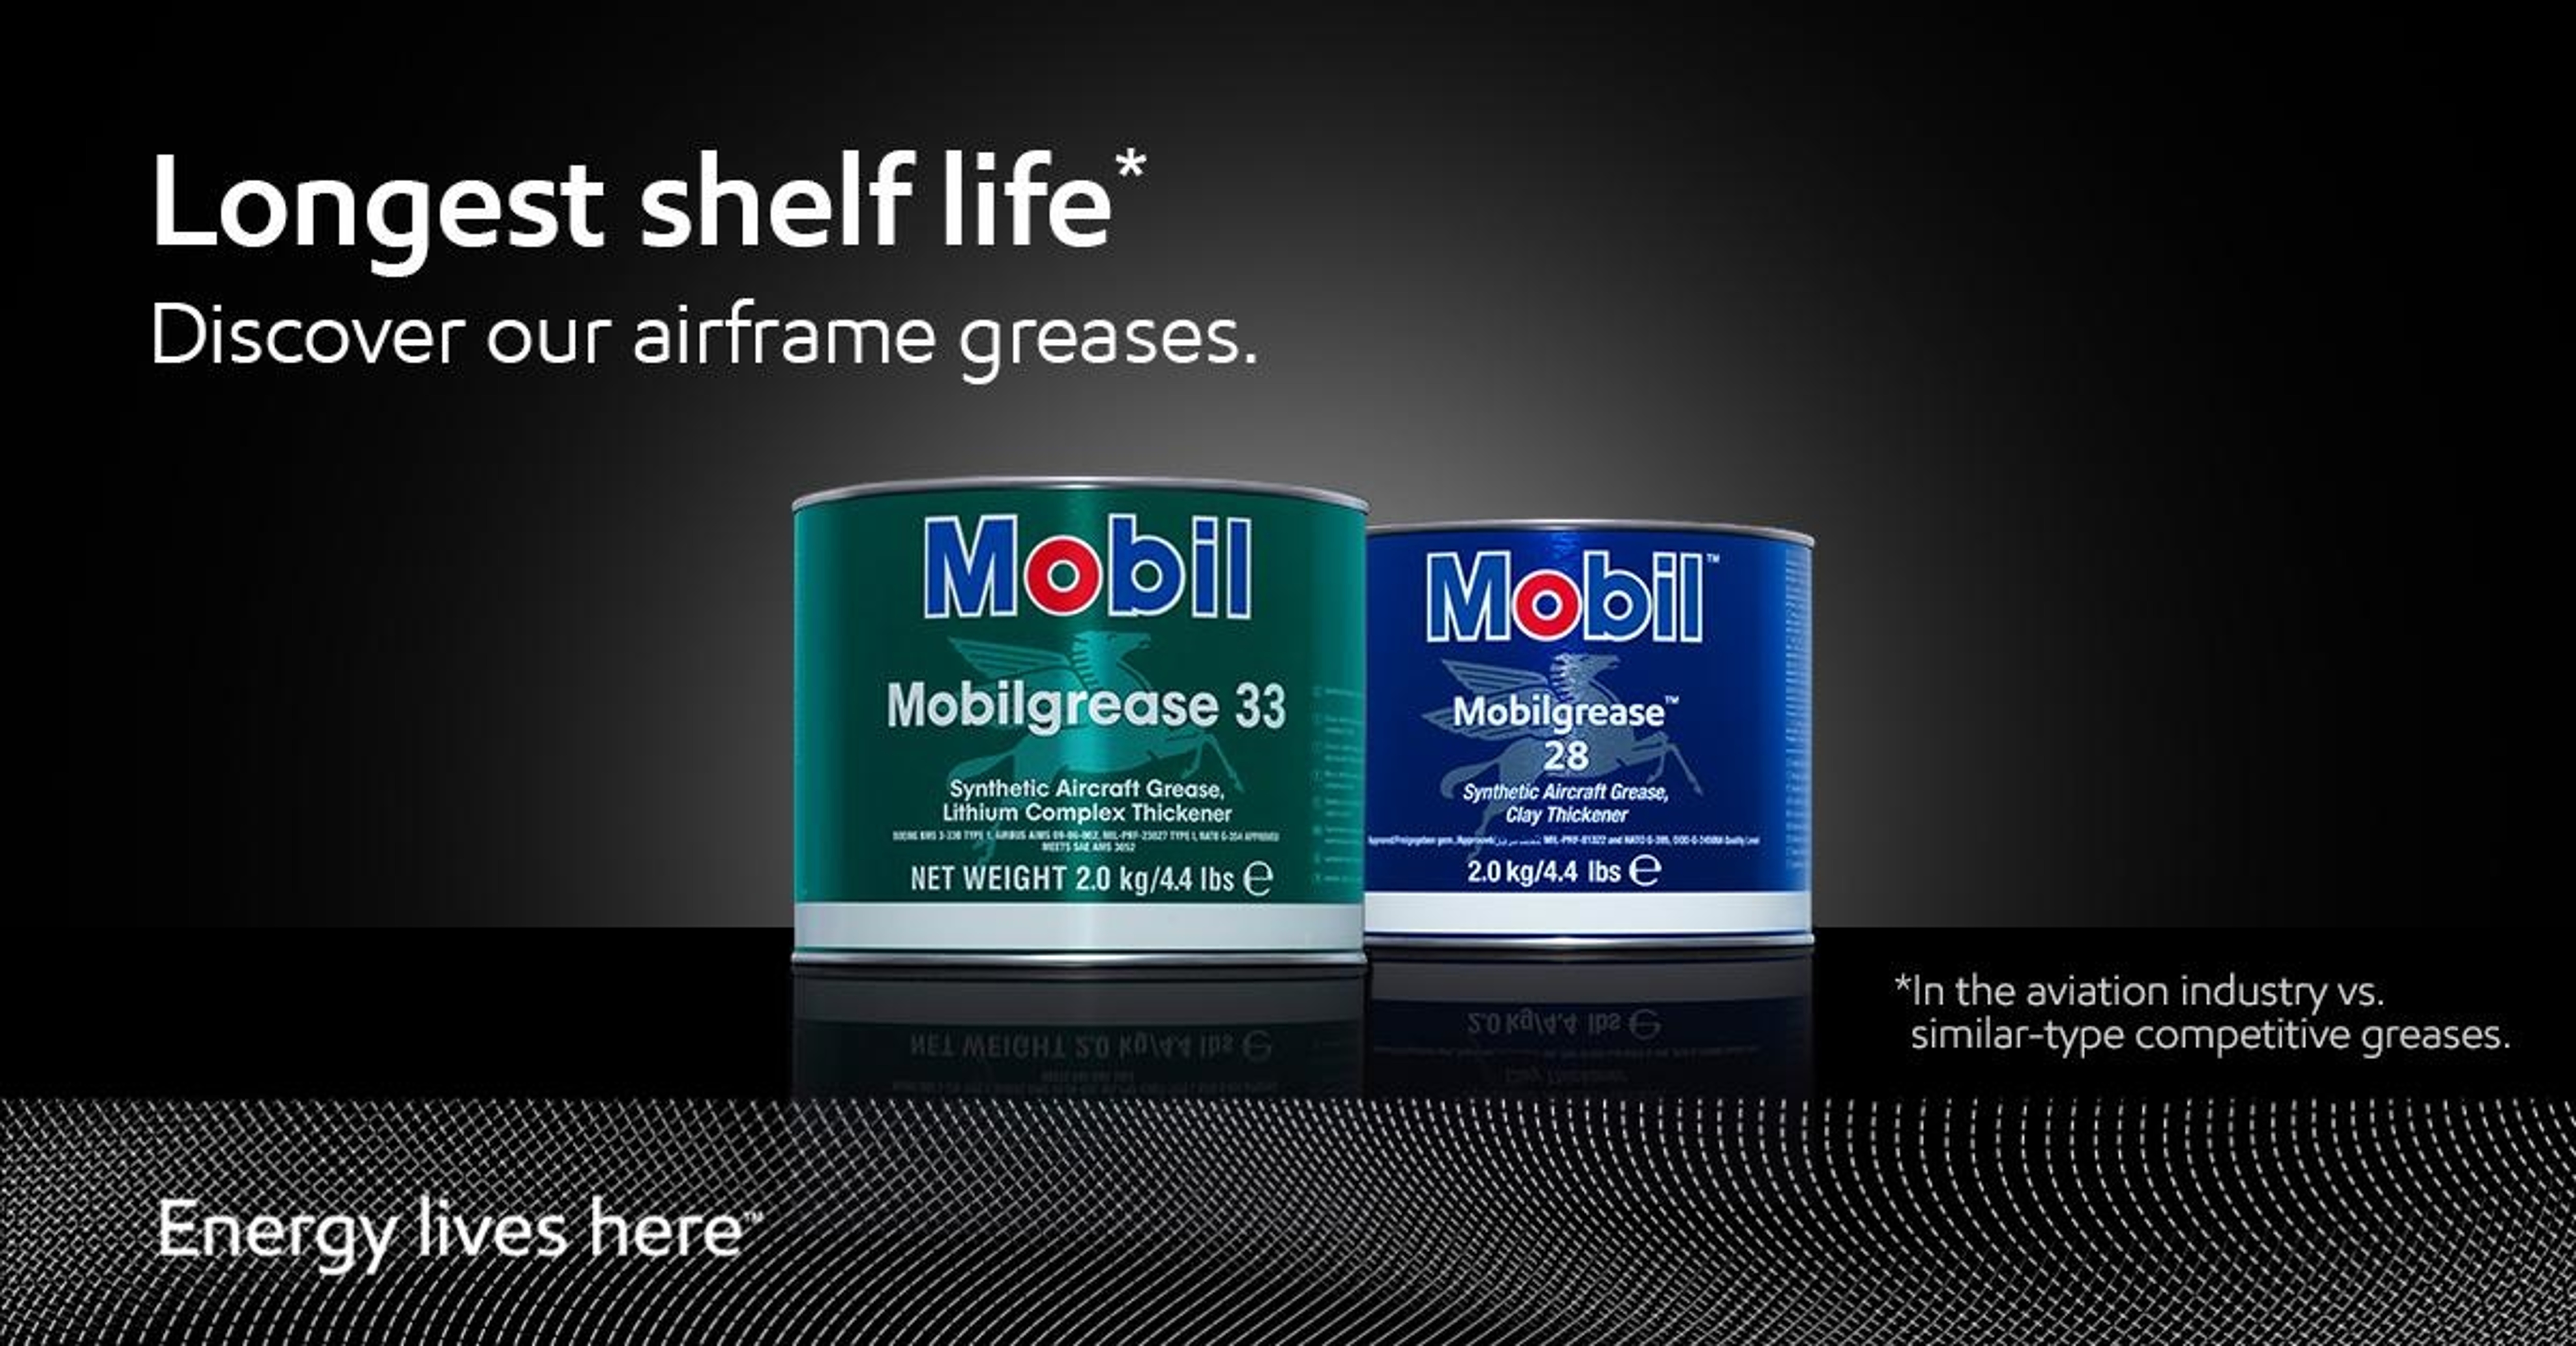 ExxonMobil Airframe Greases Offer the Longest Shelf Life in the Industry